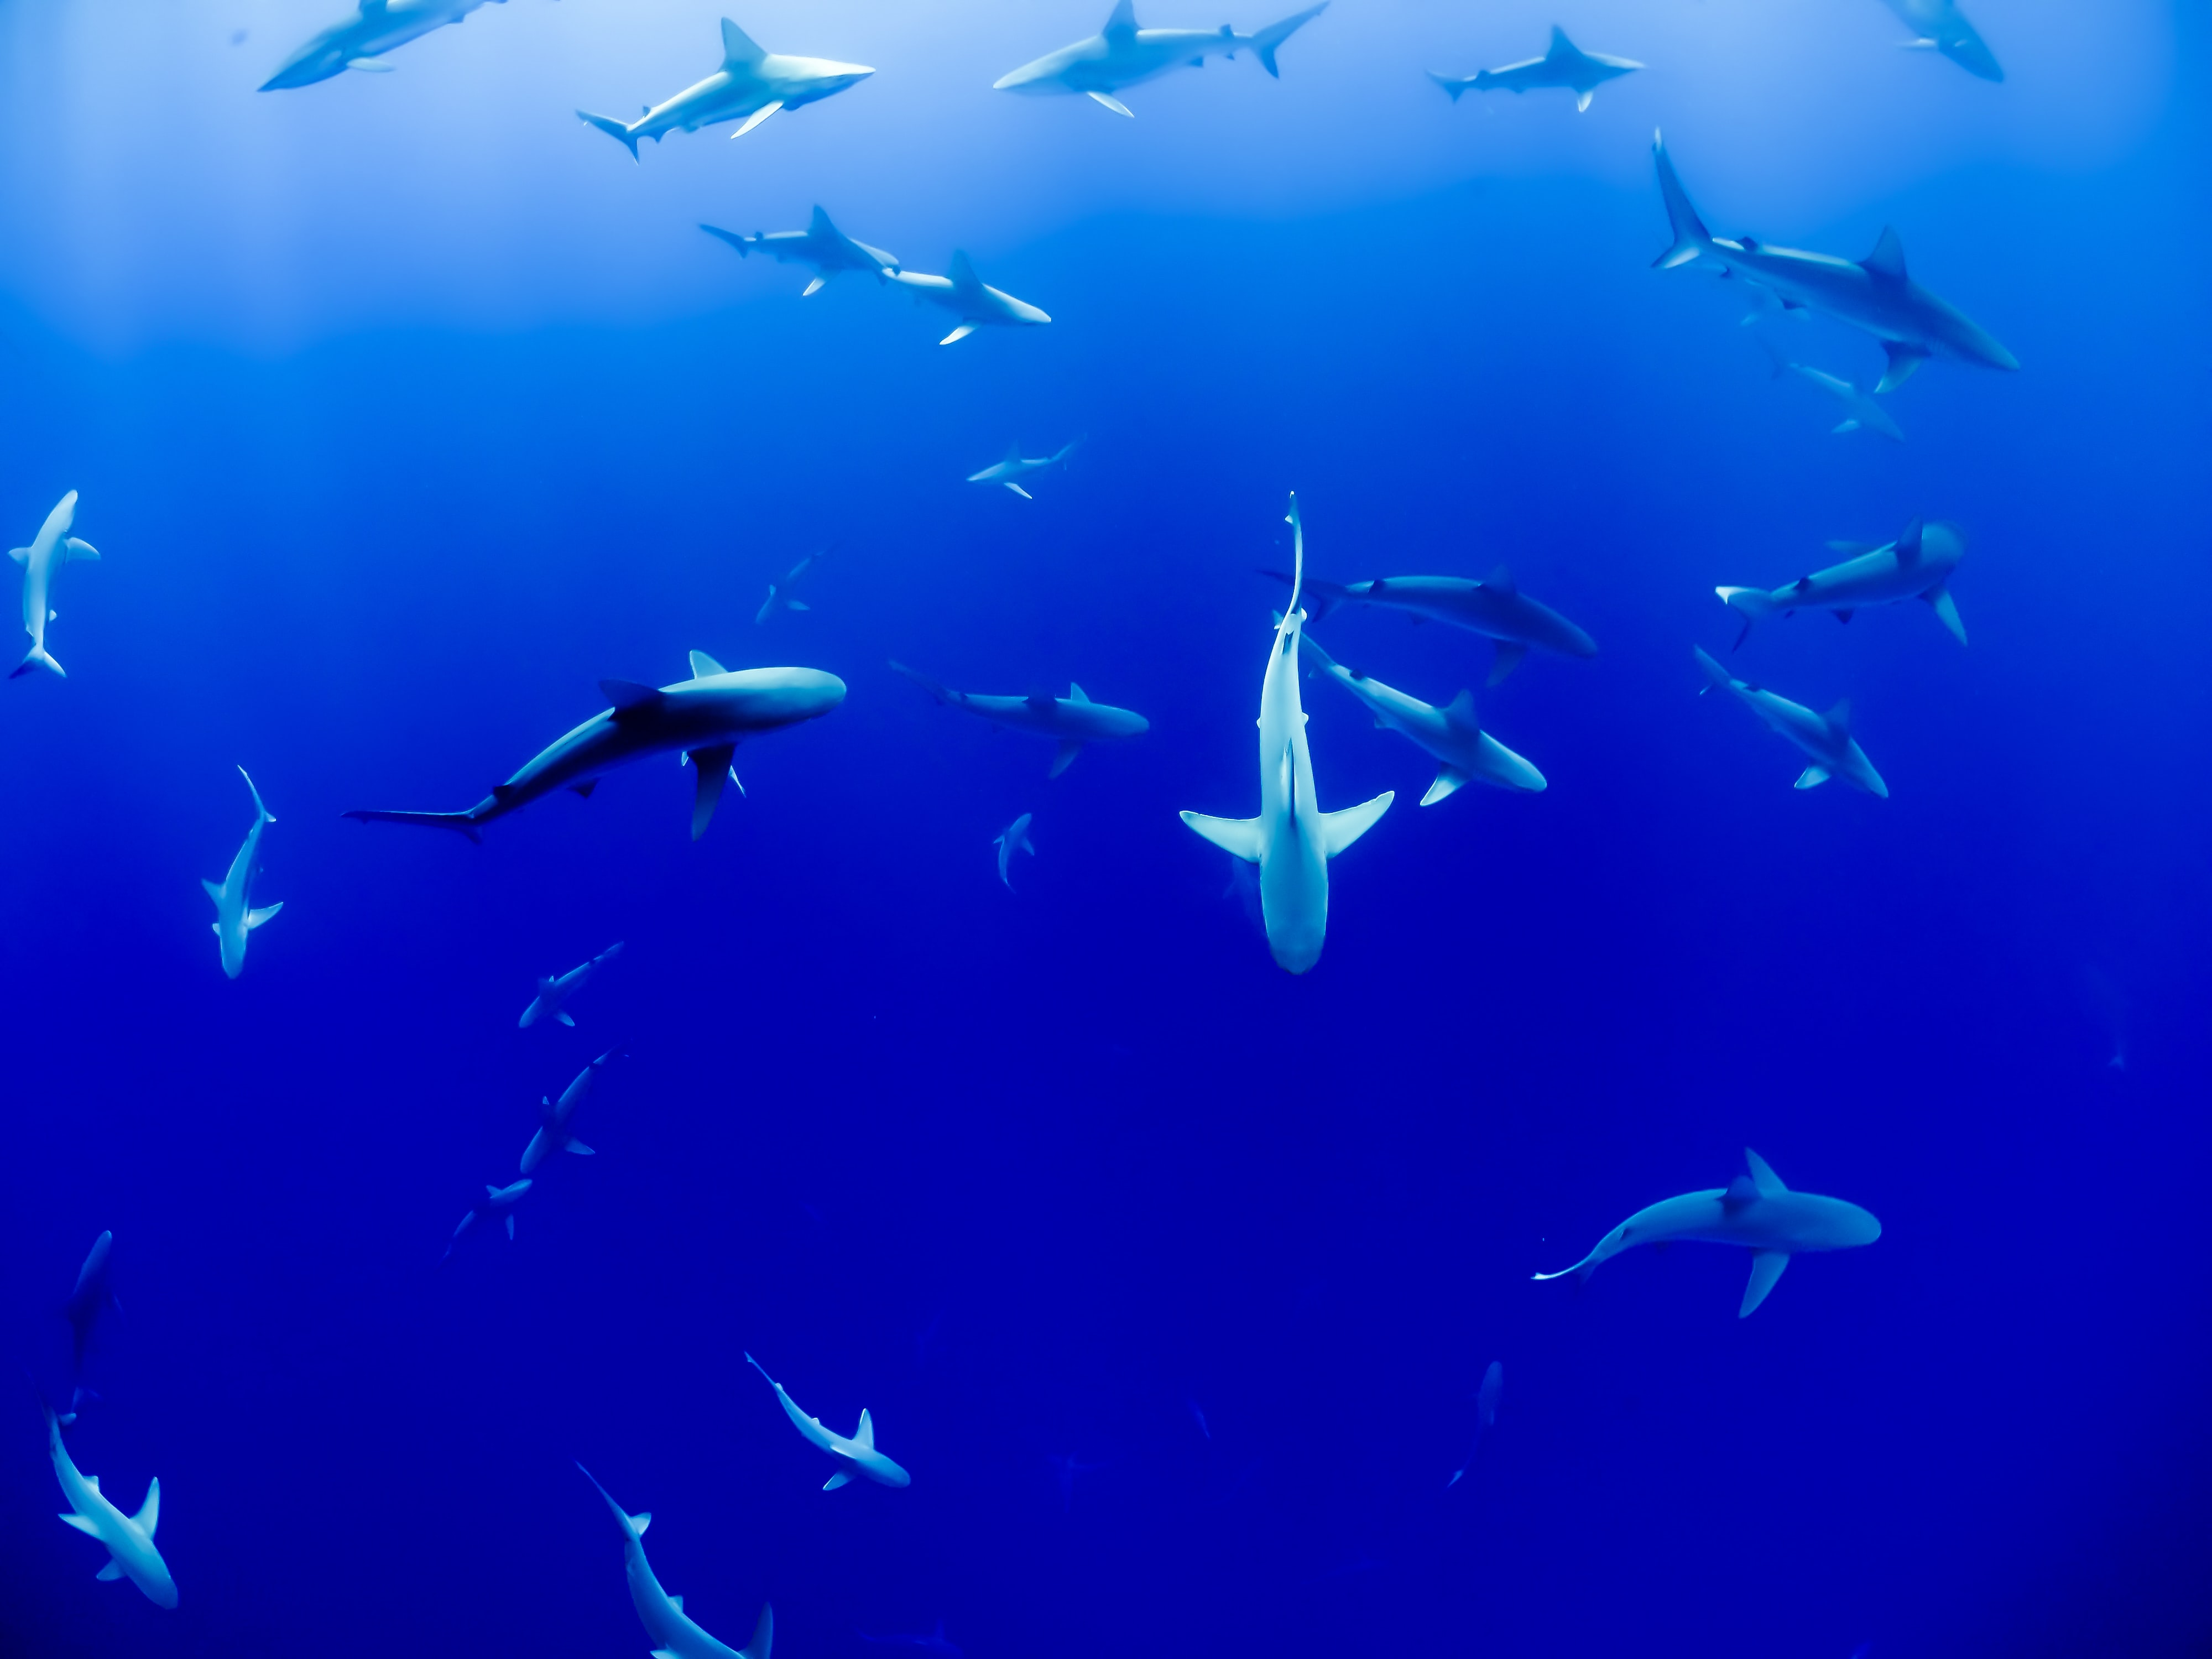 group of sharks under body of water